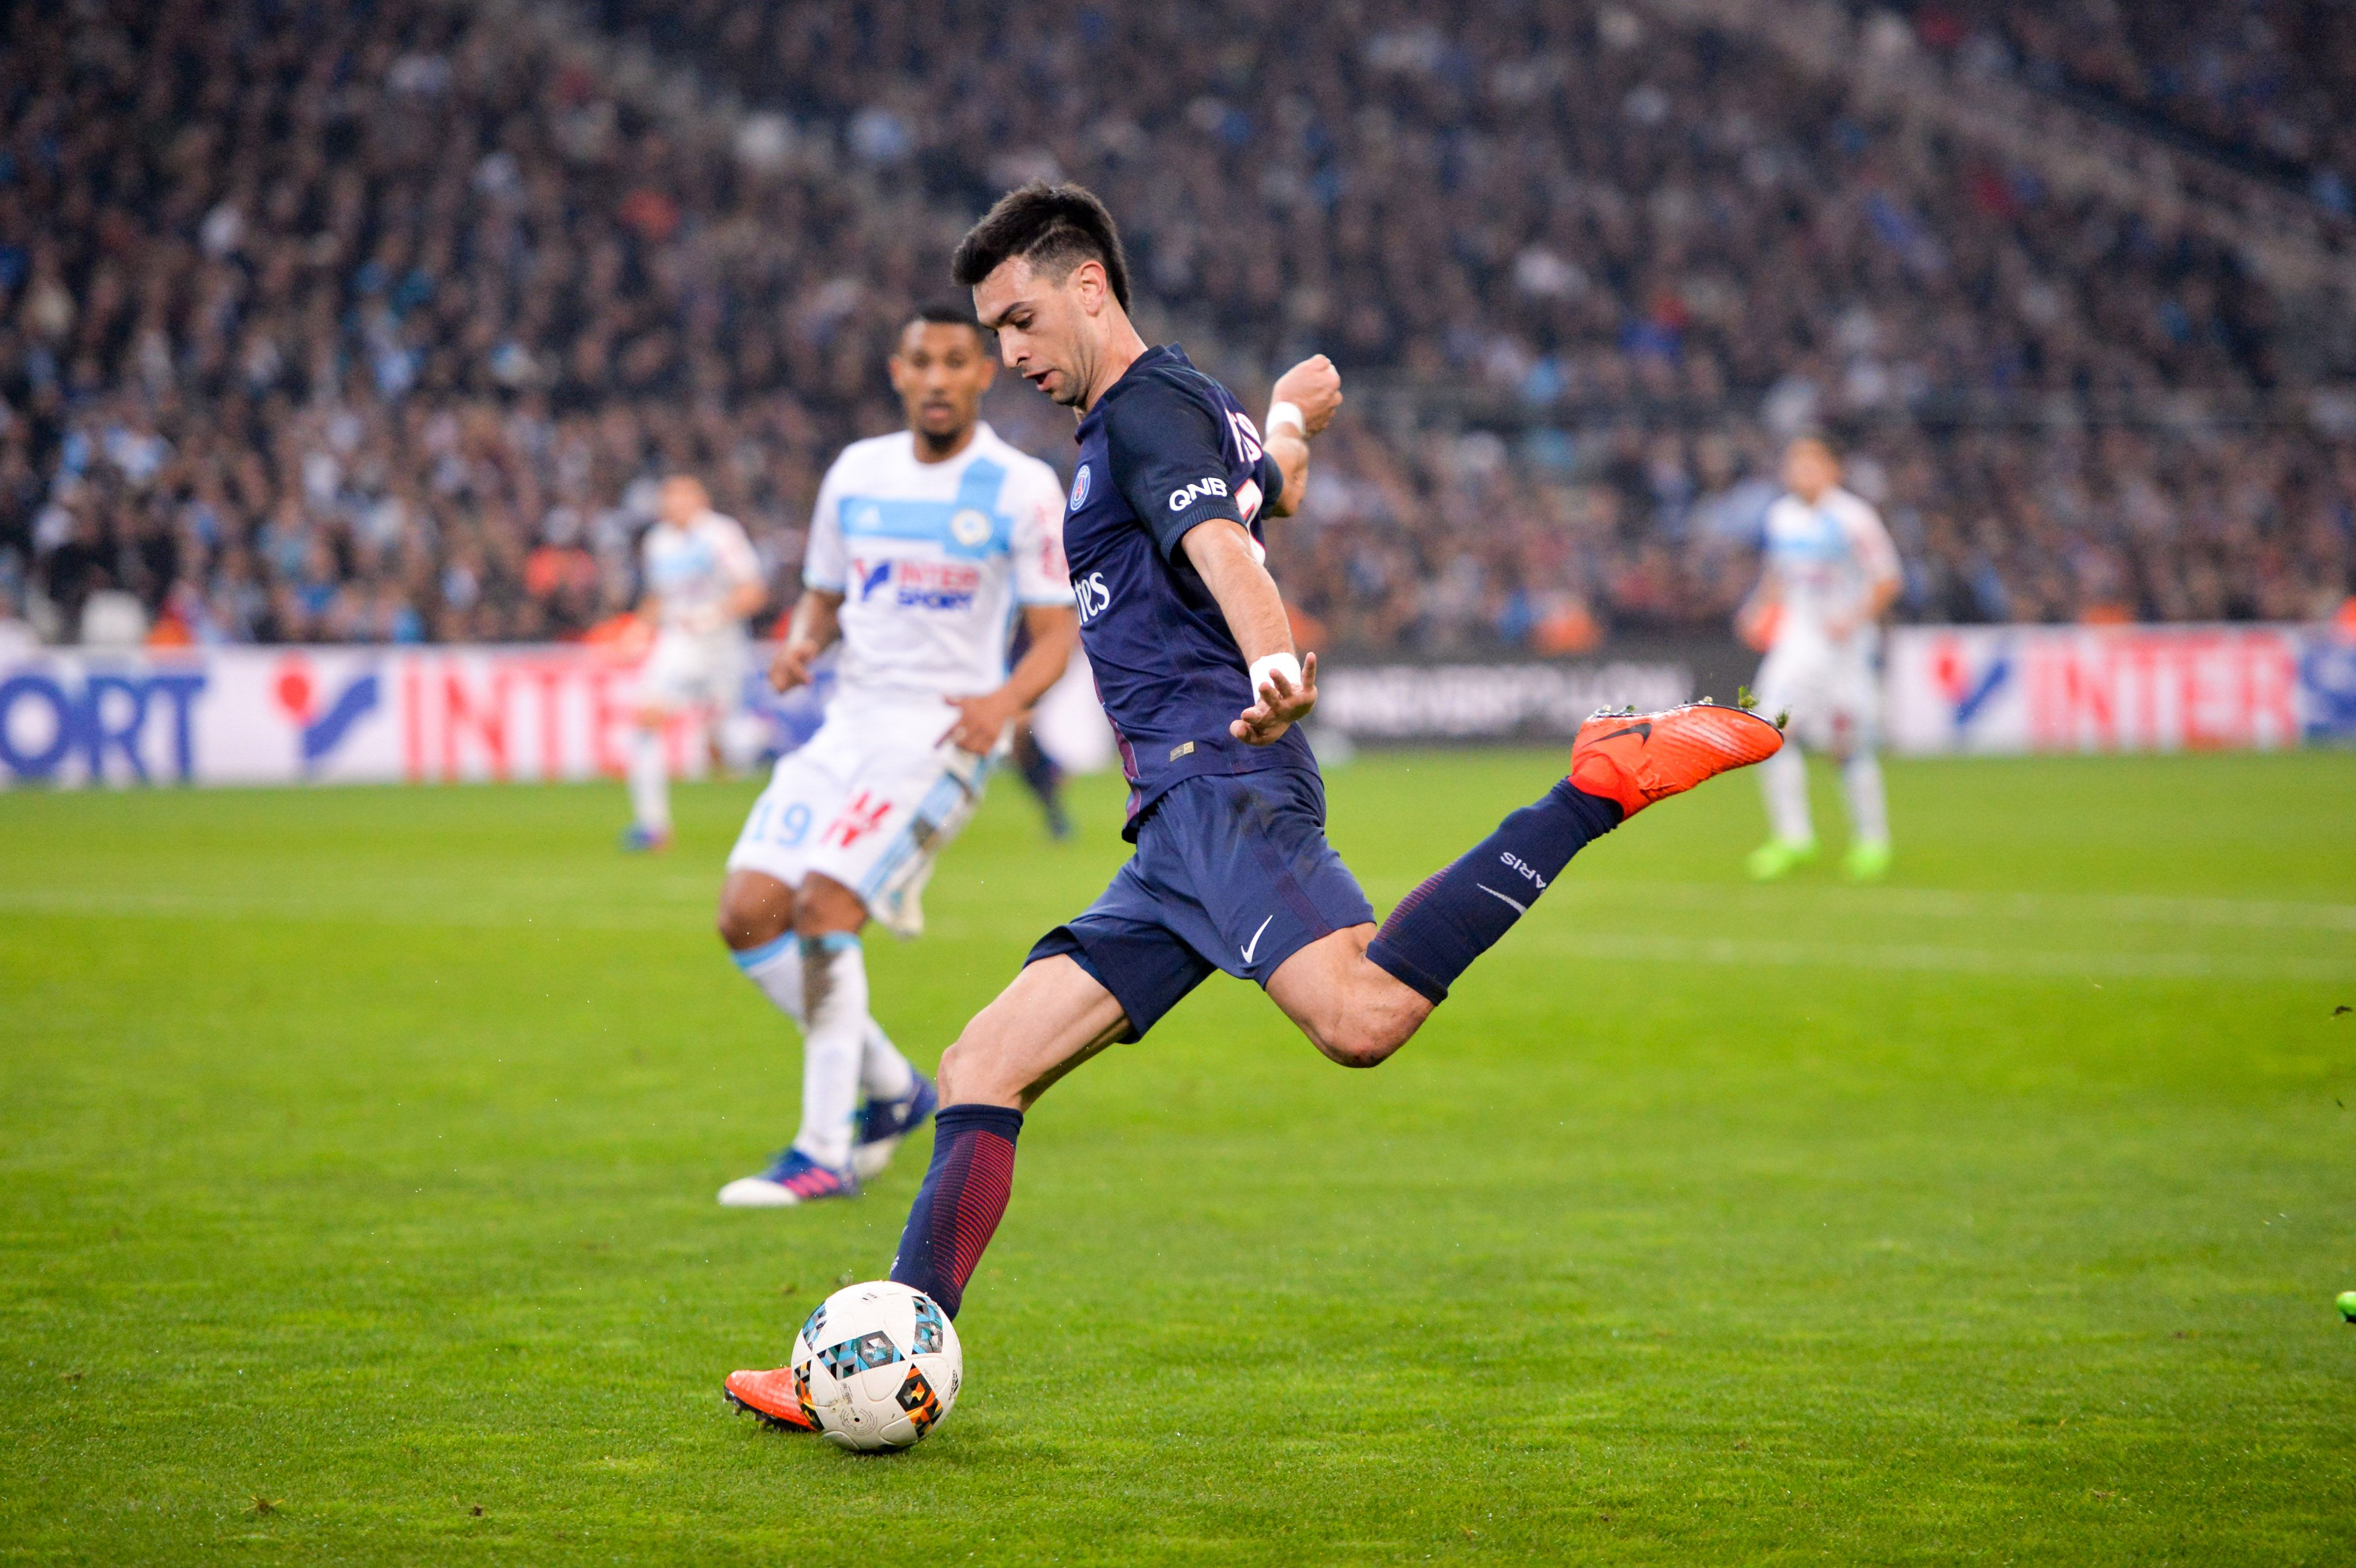 Football - Ligue 1 - Pastore : retour bluffant pour «l'artiste» du PSG